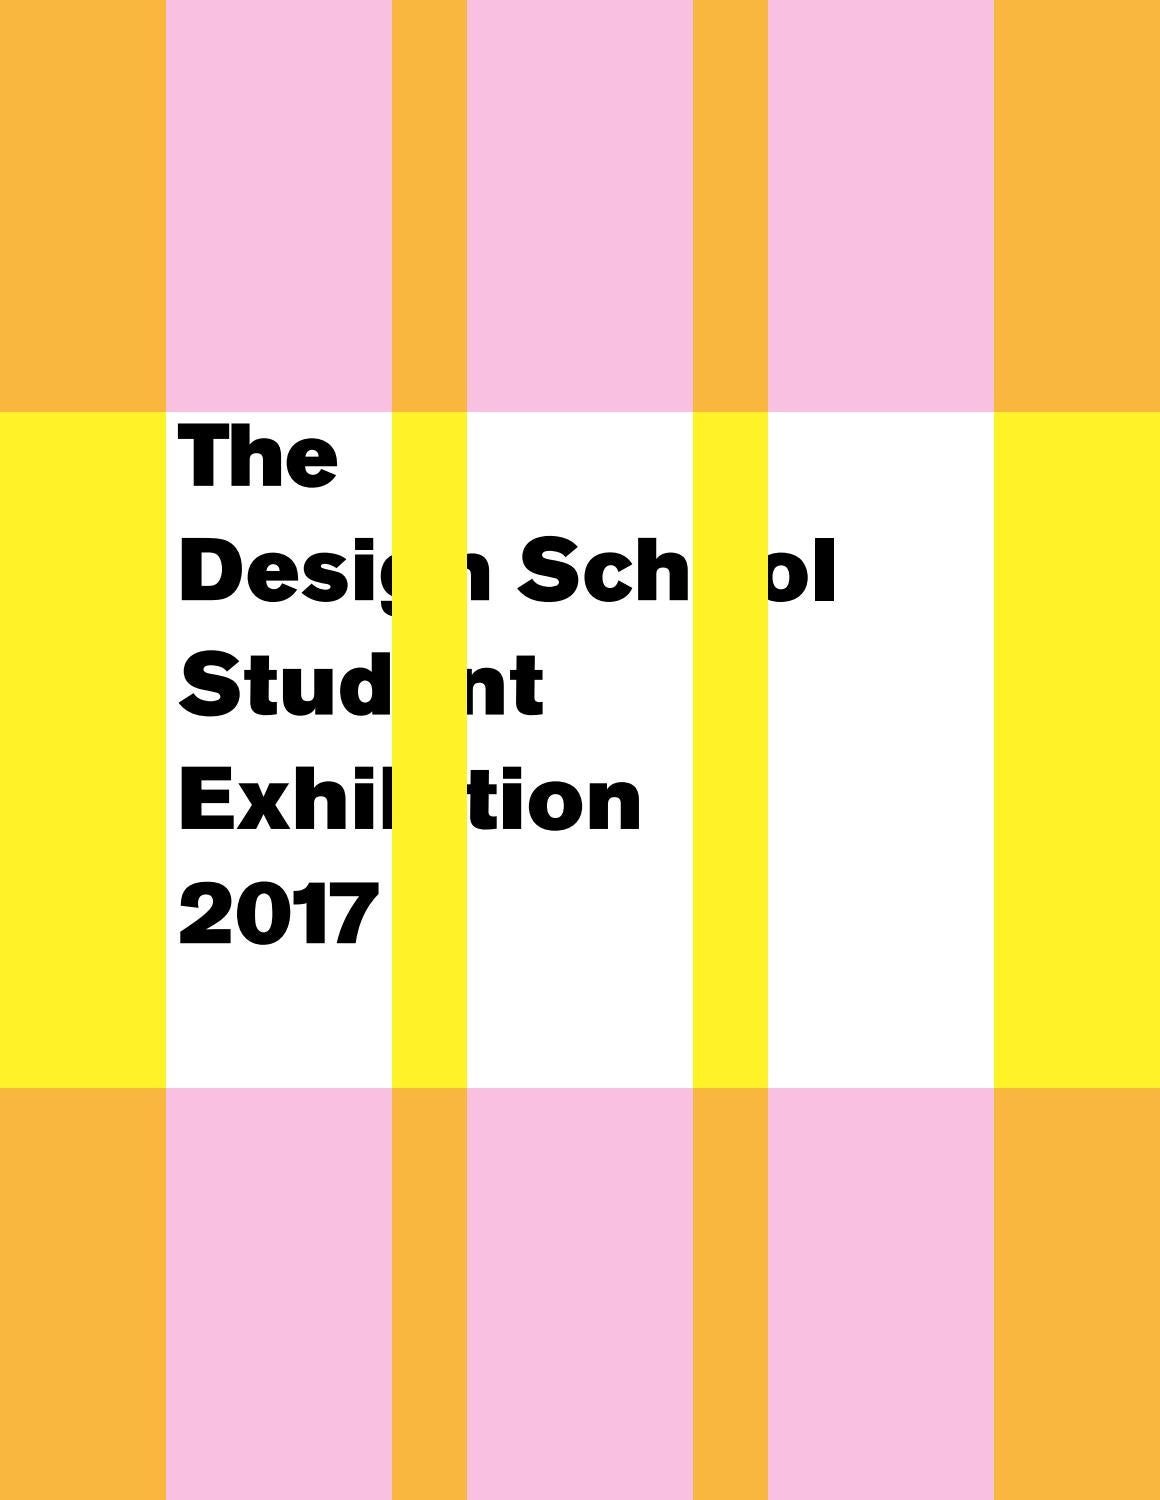 Student Exhibition Catalog 2017 By The Design School Asu Issuu Wave Rectifier Circuit Simulation Using Proteus Software Youtube